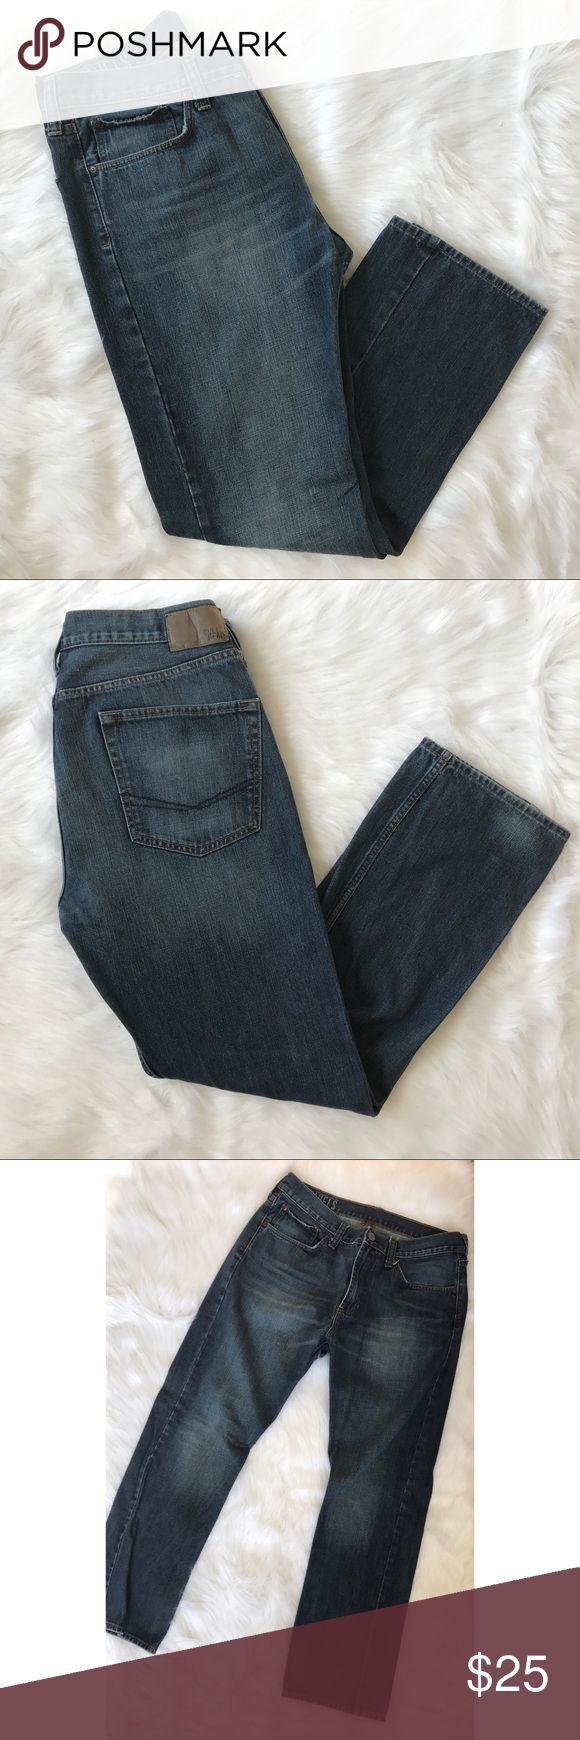 MOVING SALE❗️Bullhead mens slim gravel jeans In perfect condition No signs of rips or tears Size 34 x 30 Open to all offers 💛 Bullhead Jeans Slim